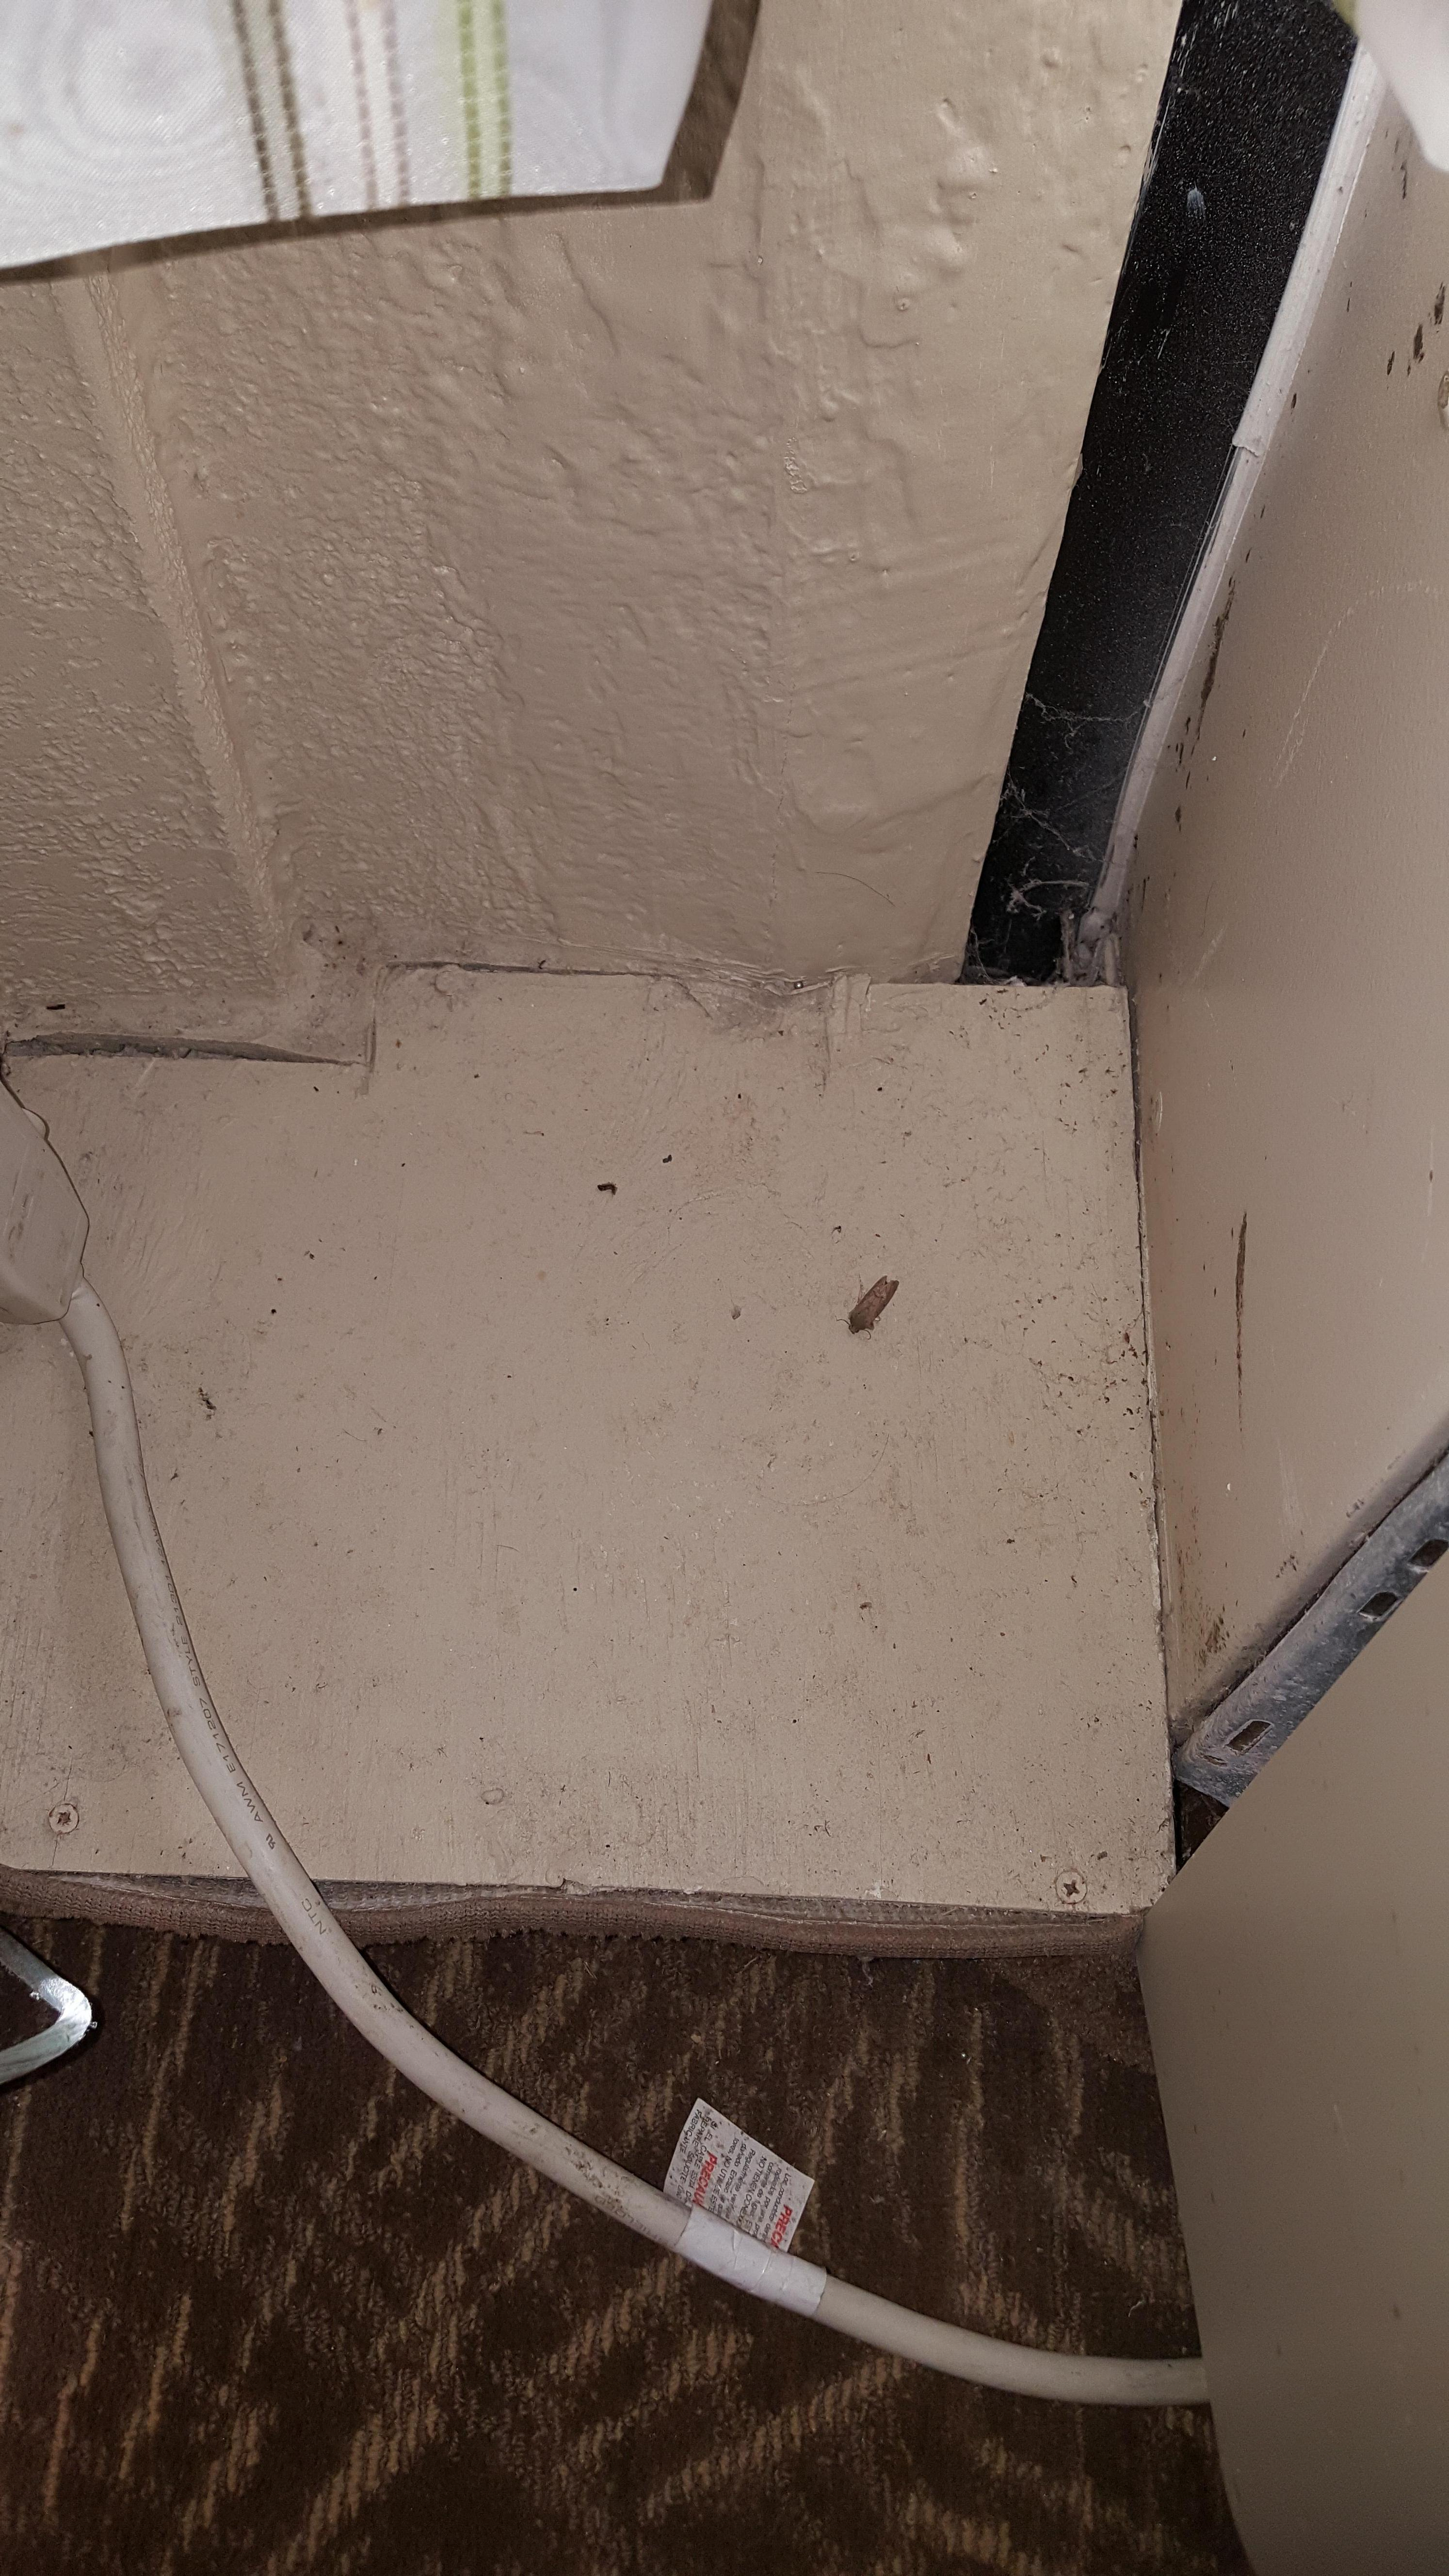 dirt and spider webs next to the heater unit